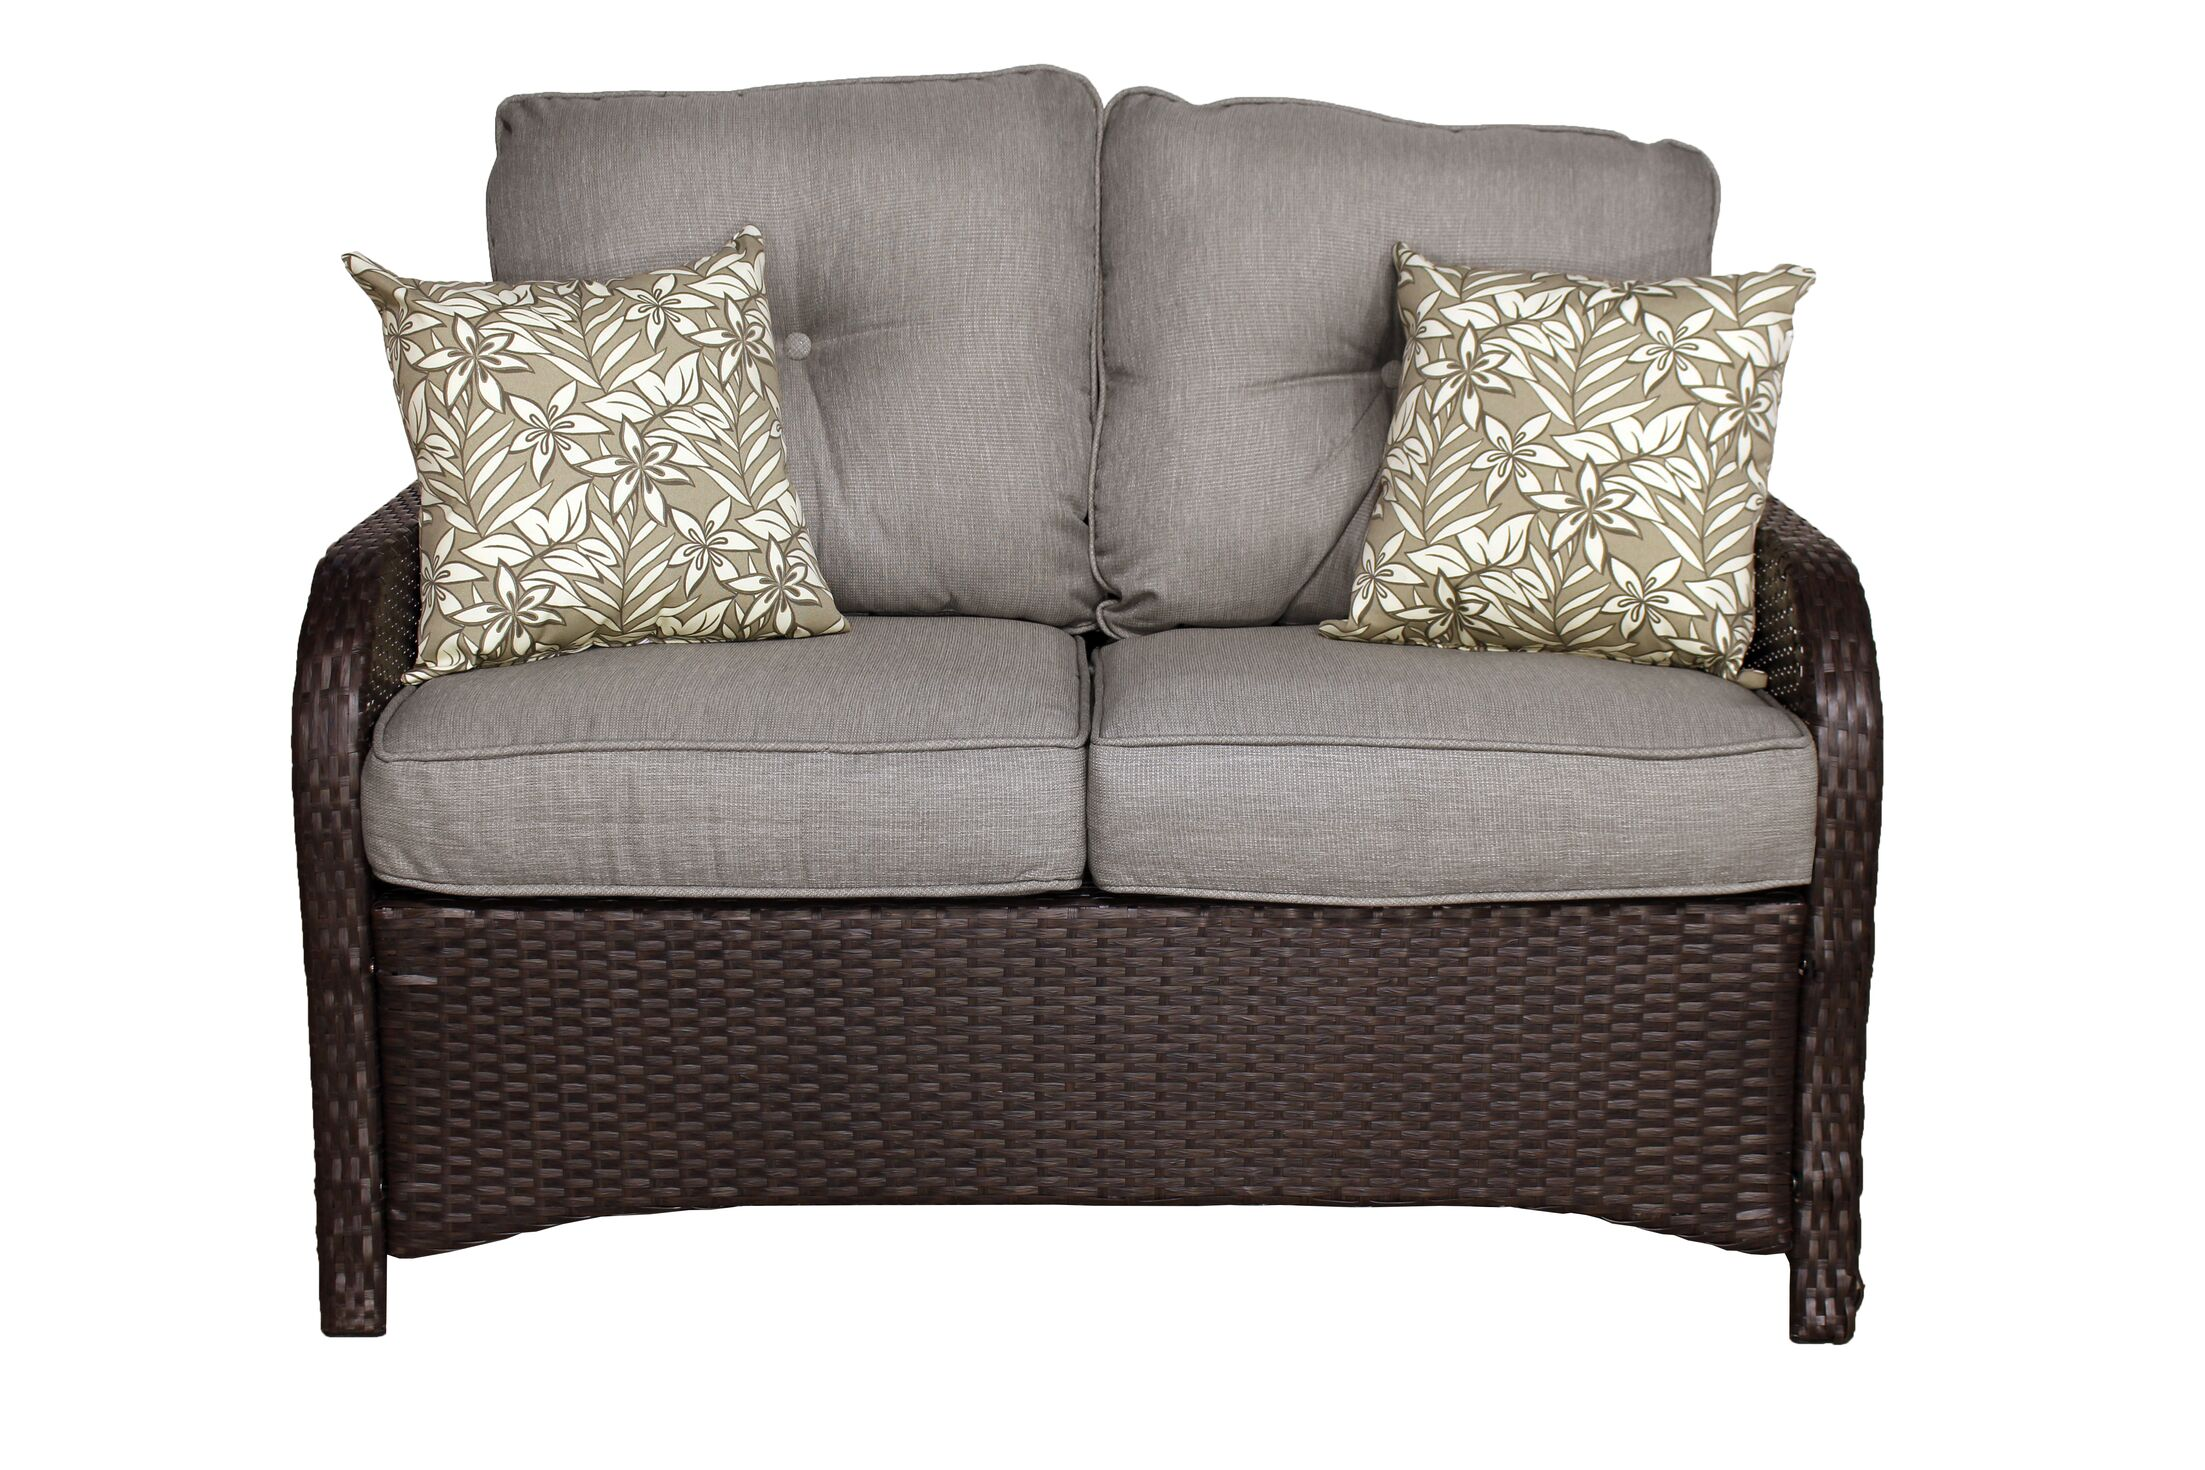 Hargrove 5 Piece Sofa Set with Cushions